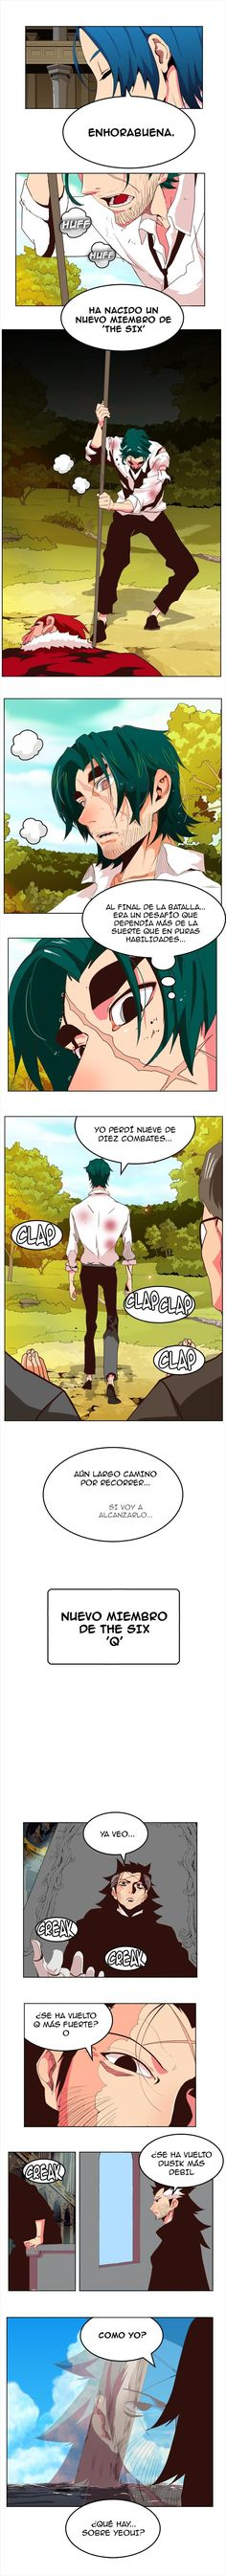 The God of High School - MANHWA - Lector - TuMangaOnline